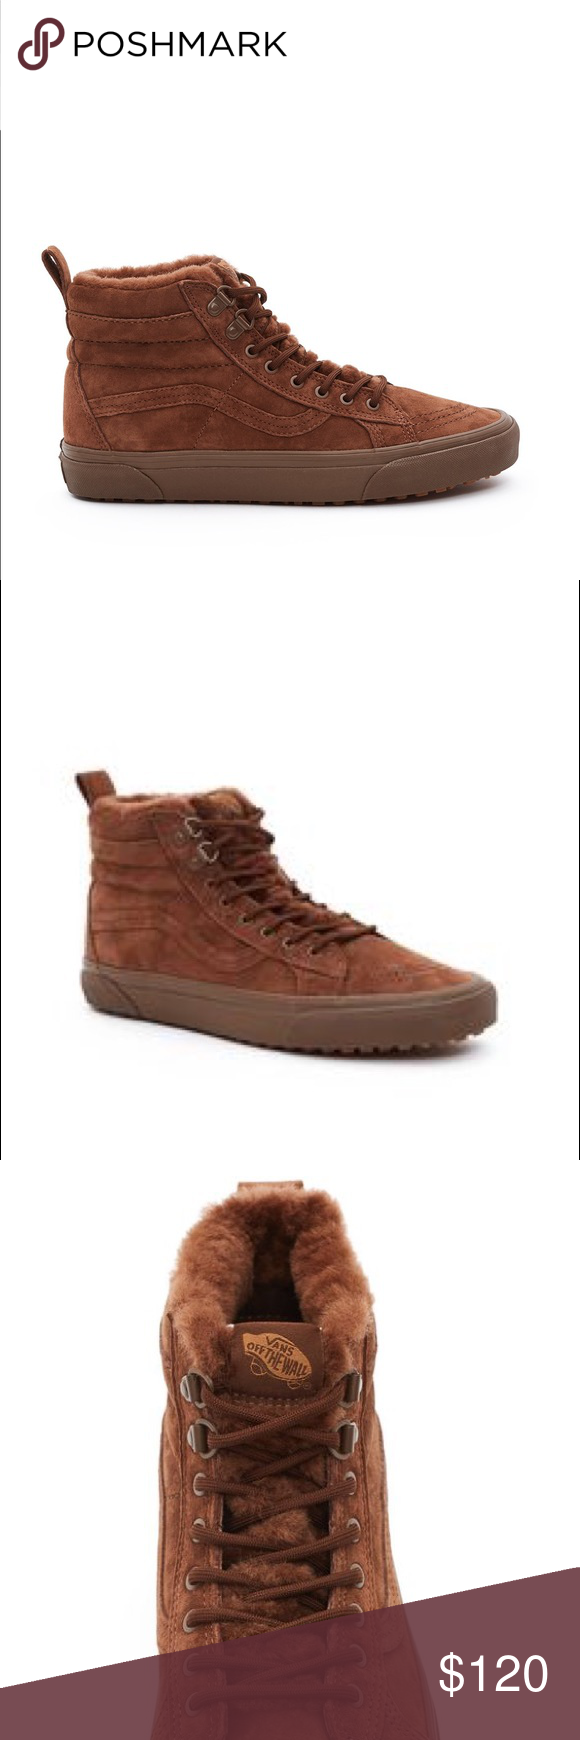 41454a8c50 Vans for Opening Ceremony Sk8-Hi Mte sneakers 7.5 Brand new in box! From  the Vans x OC collab. Brown Suede sneakers with faux fur on the inside.  Men s  6.